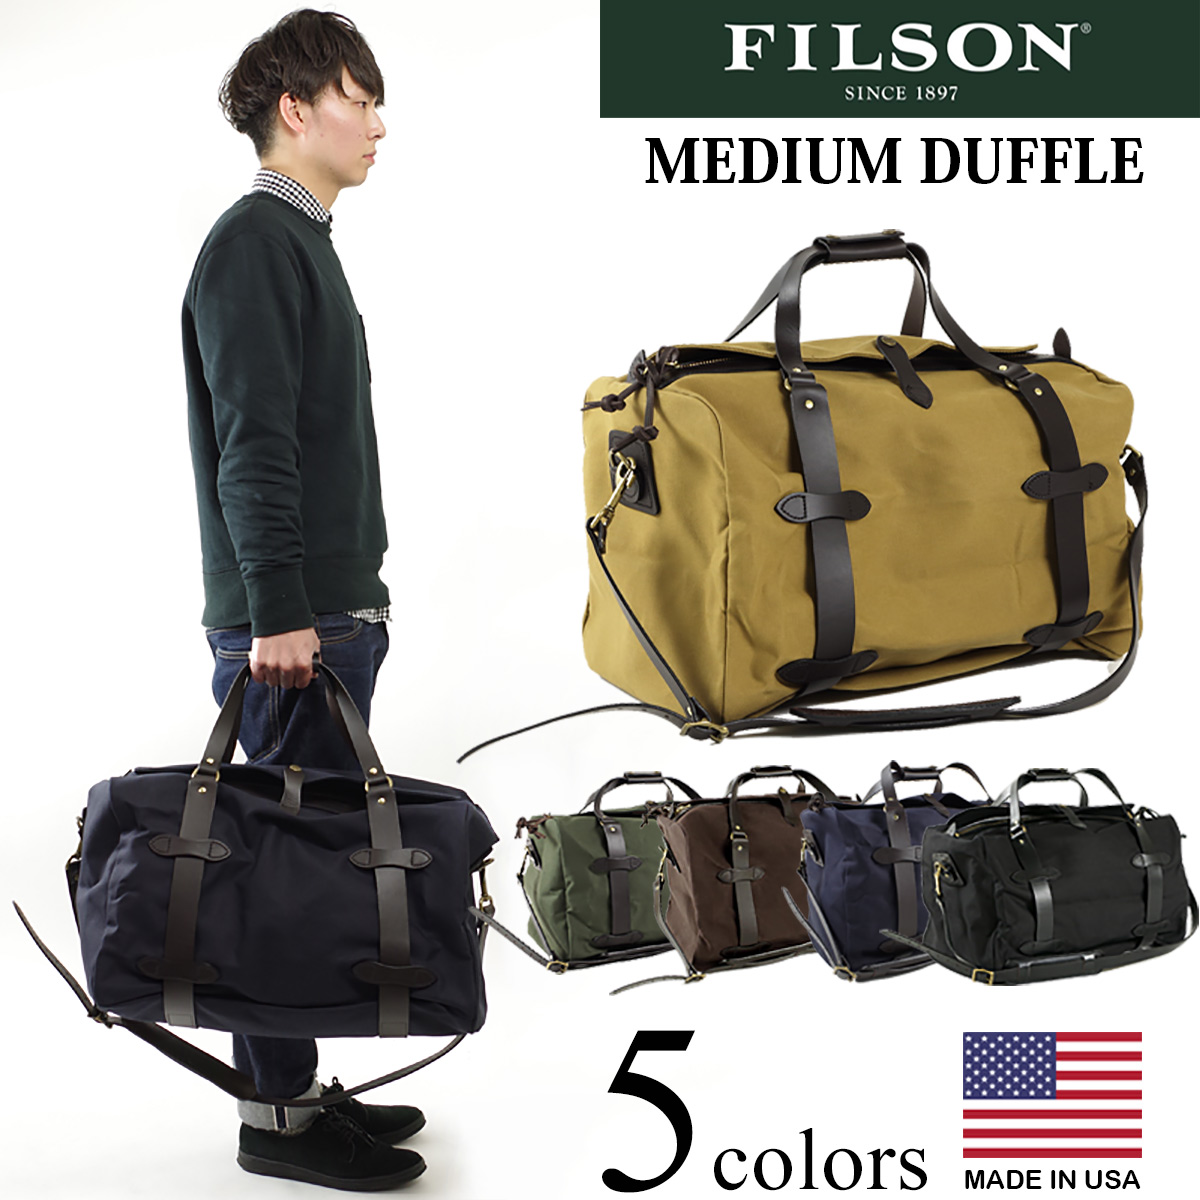 Filson Medium Canvas Duffel Bag Duffle Made In The United States